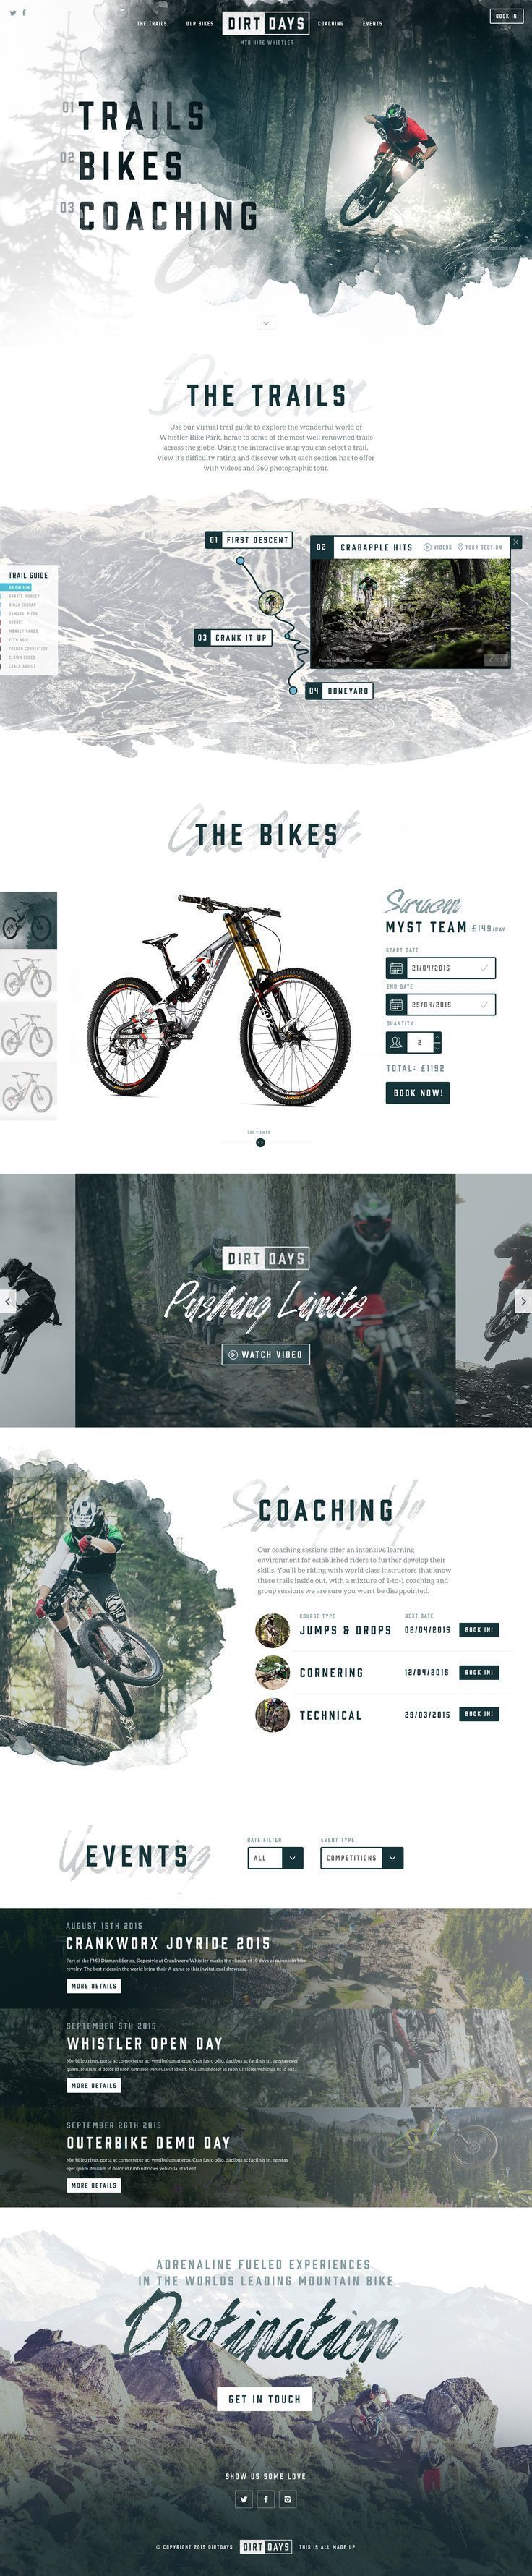 Trailer bike design The filter (or opacity) on the photos that make them appear washed out help the photos compliment each other on the site. The Analogous colour scheme helps make this website seem really intense which is really interesting.